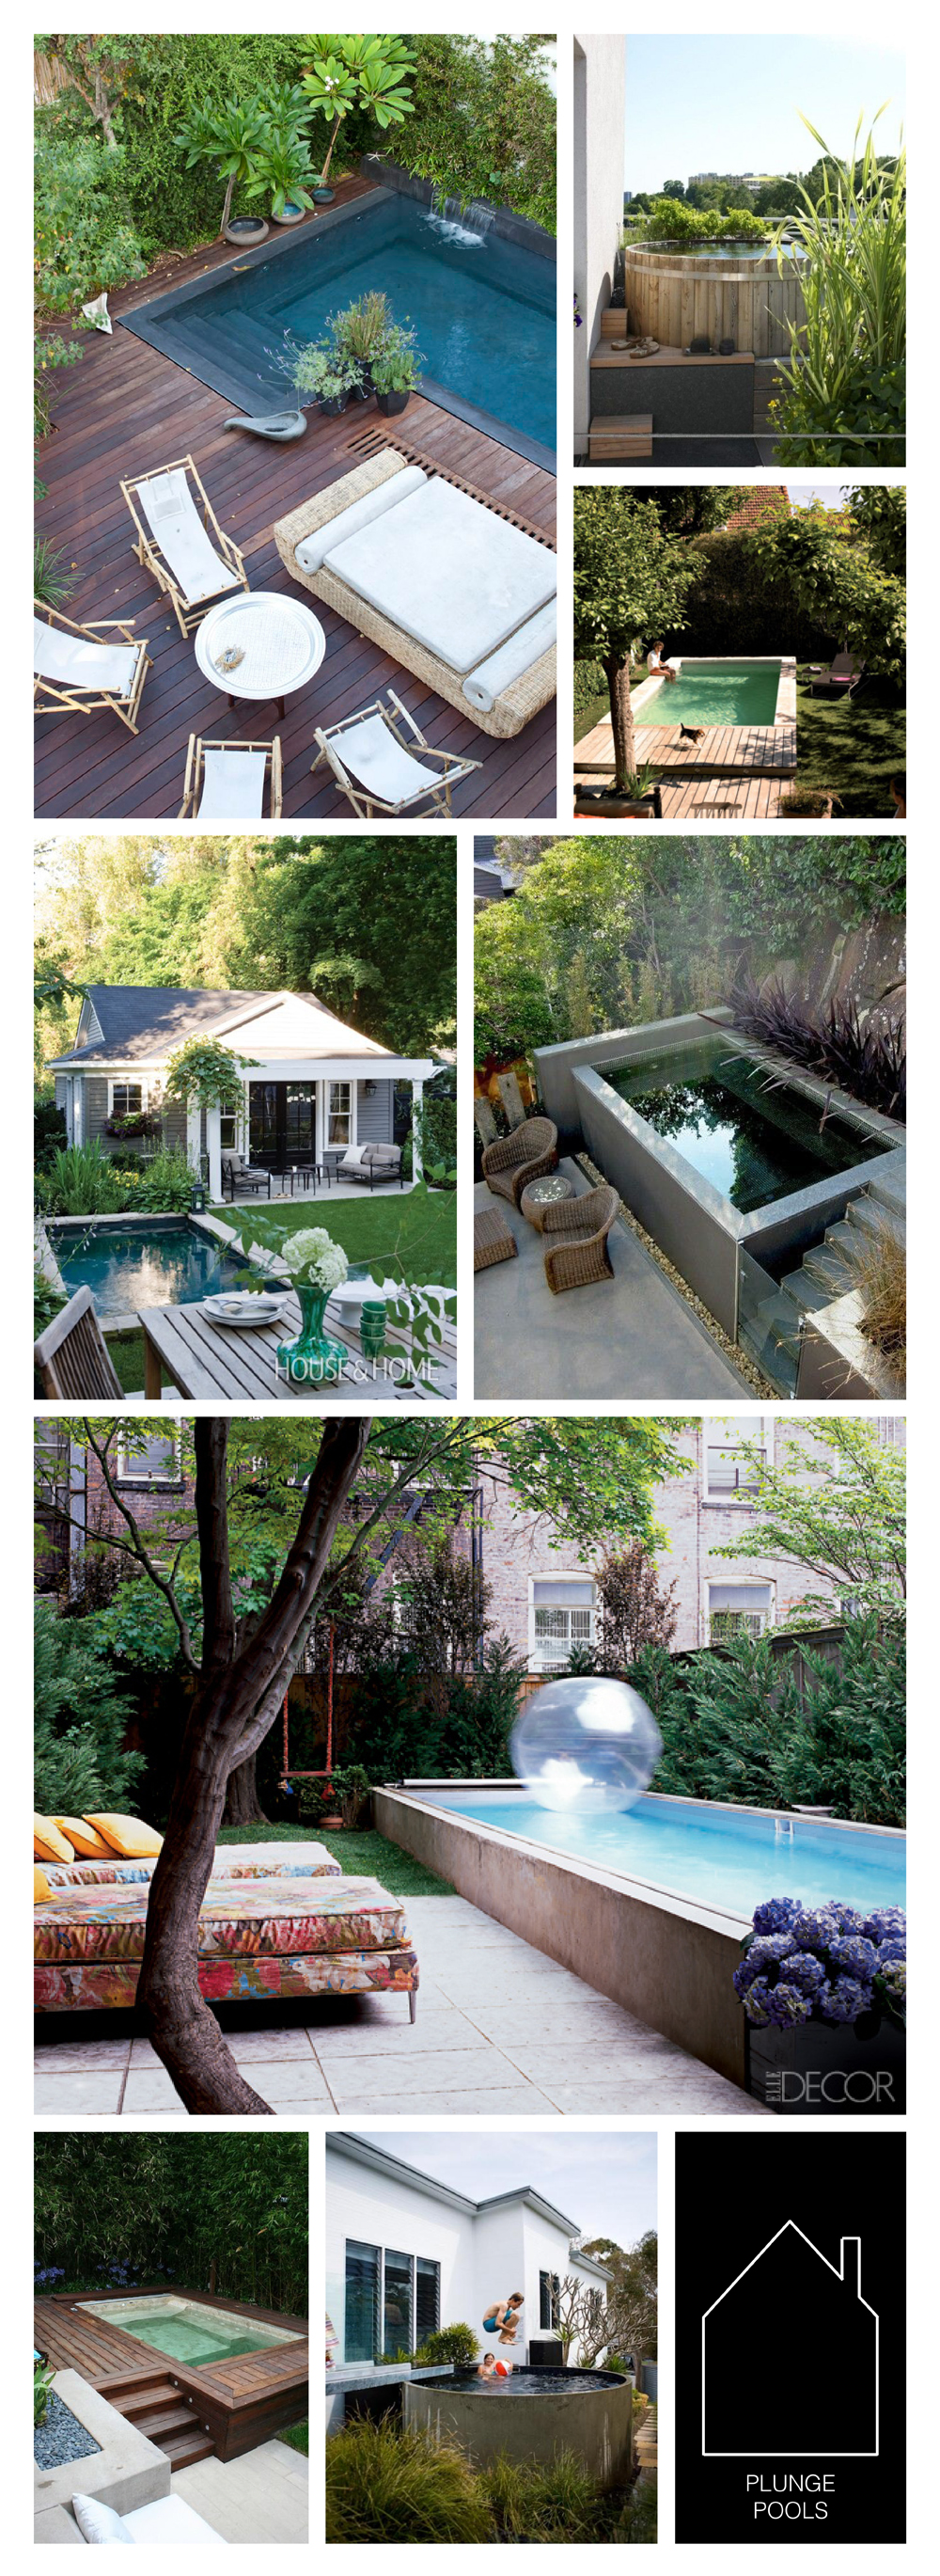 from top left  - source unknown - via  The Style Files  - via  DECO  - via  House & Home  - source unknown - via  Elle Decor  - source unknown - via  Australian Plunge Pools